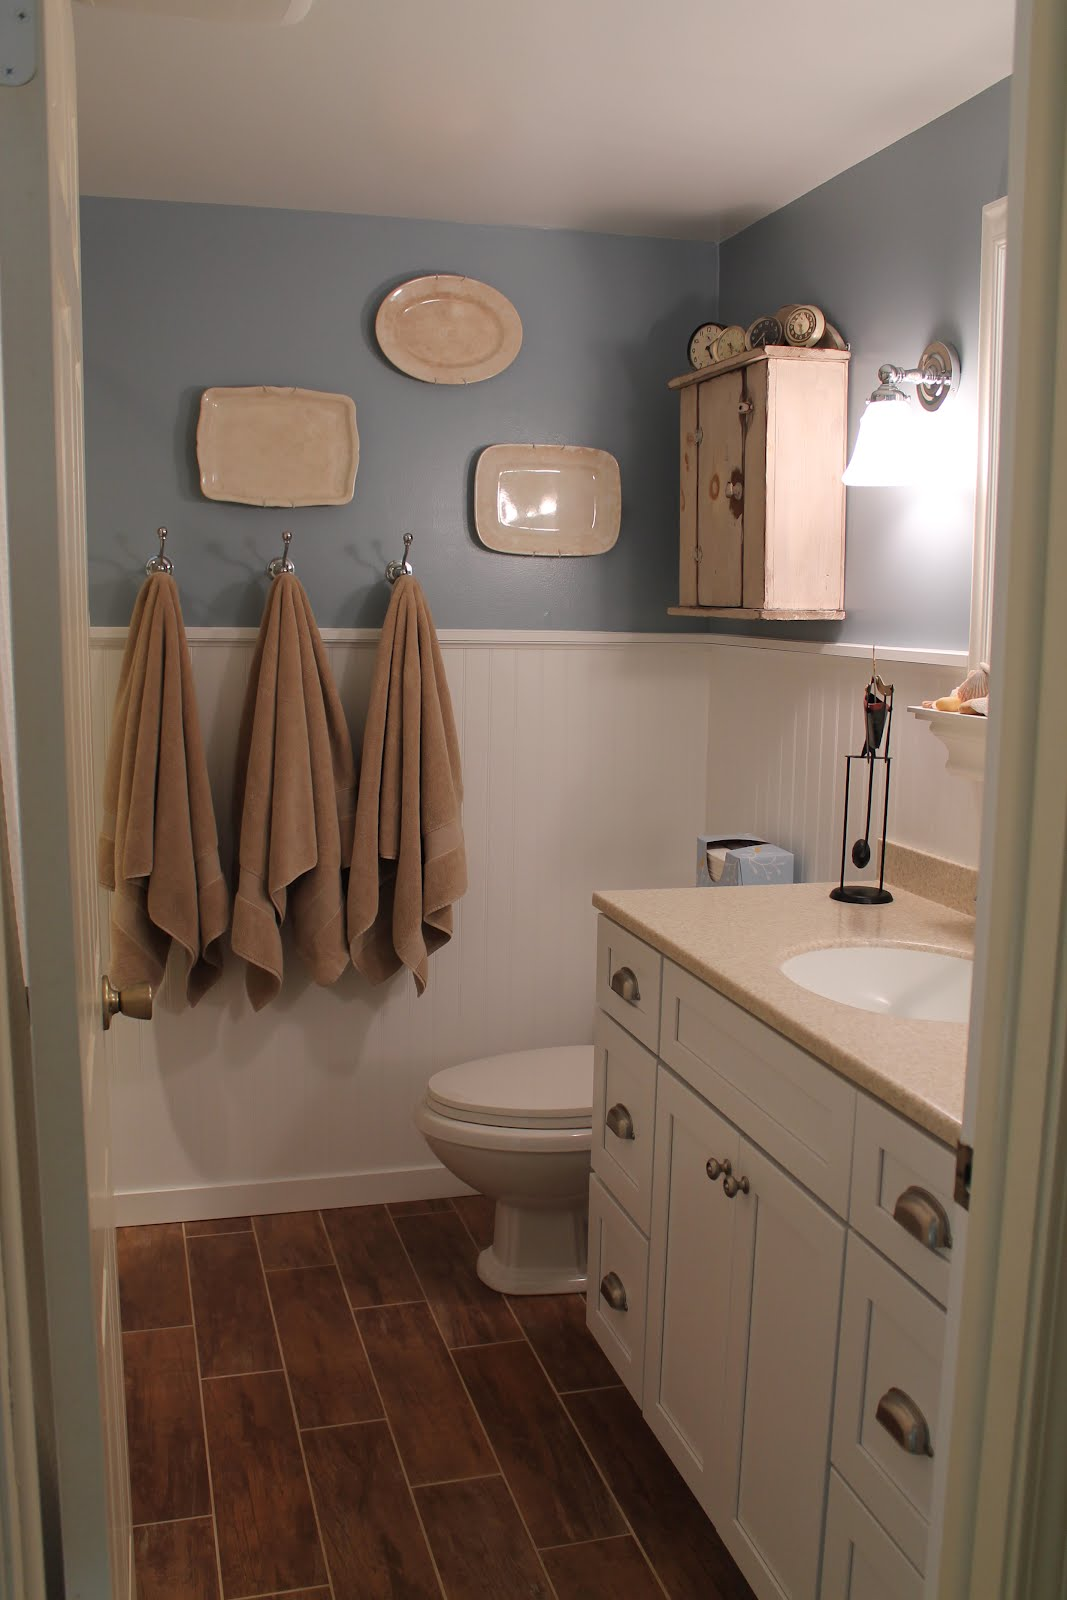 Superbe 1 Bathroom Remodel Using Woodgrain Tile, By Elizabeth And Co Featured On  @Remodelaholic